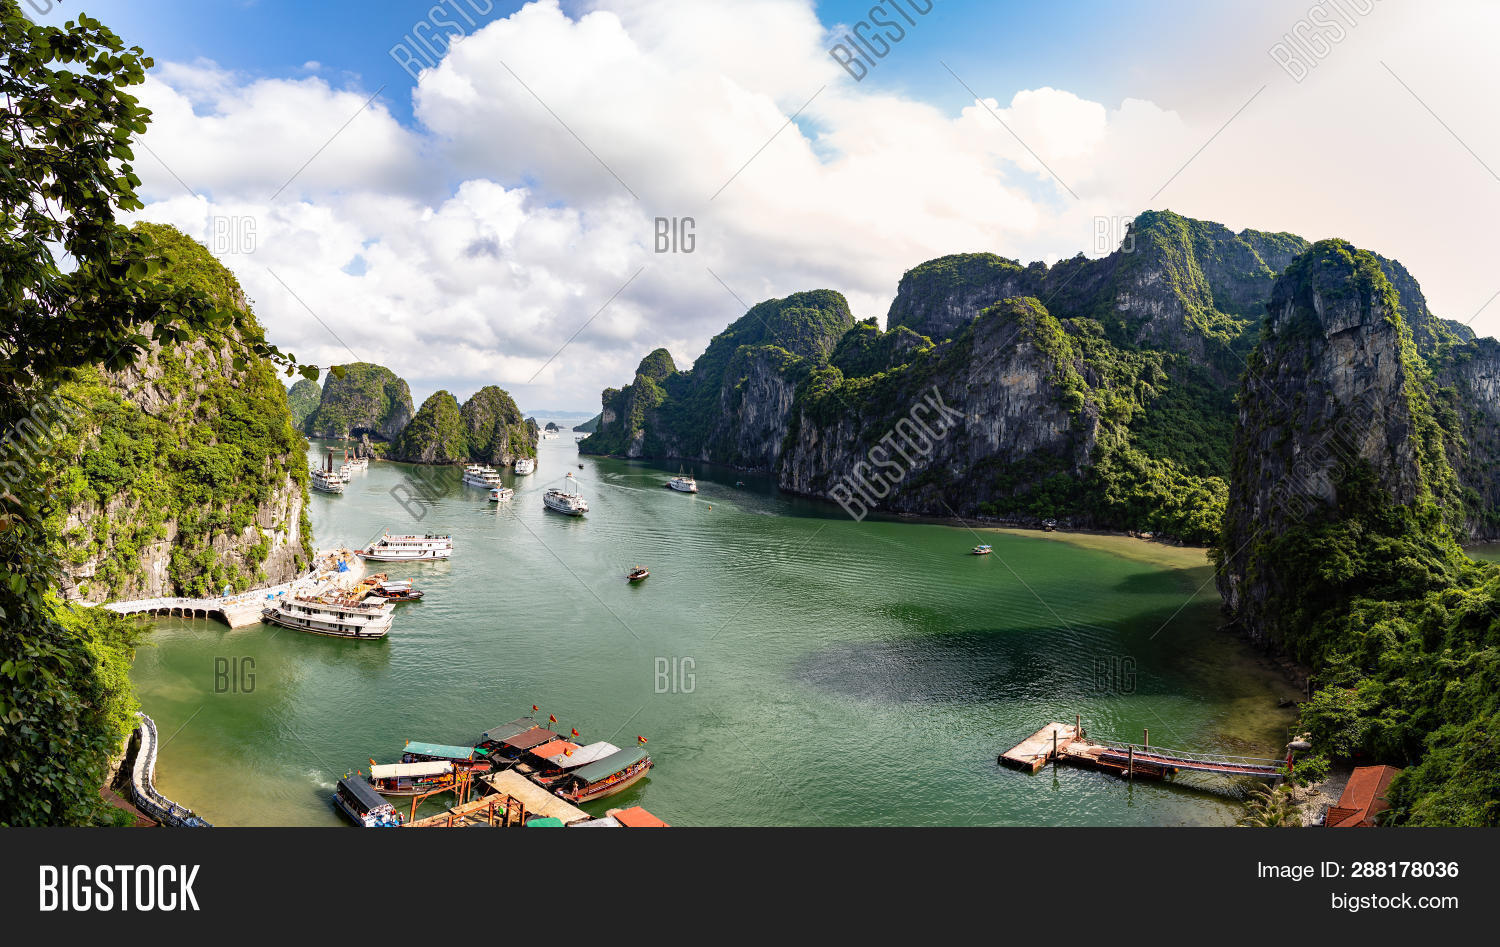 asia,asian,attraction,bay,beautiful,blue,boat,caves,clouds,cruise,culture,destination,famous,floating,green,grottoes,halong,heritage,indochina,island,karst,landmark,landscape,mountain,nature,ocean,outdoor,panorama,peak,rock,scenery,scenic,sea,sky,southeast,stone,tourism,tourist,travel,trip,tropical,unesco,unique,vietnam,vietnamese,water,waves,world